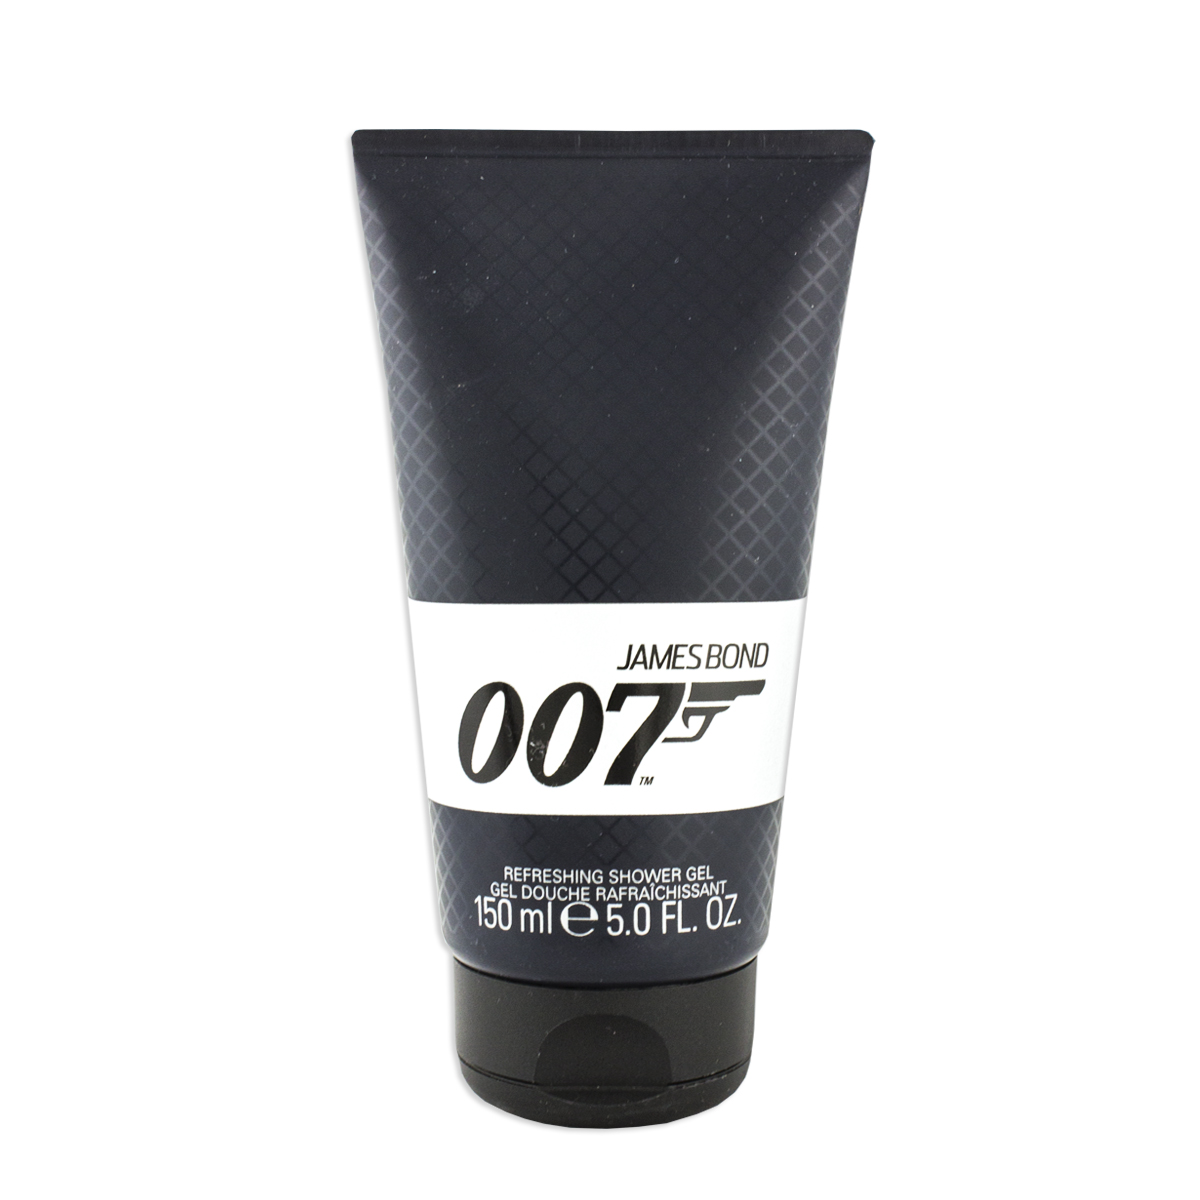 James Bond James Bond 007 Duschgel 150 ml (man) 74457